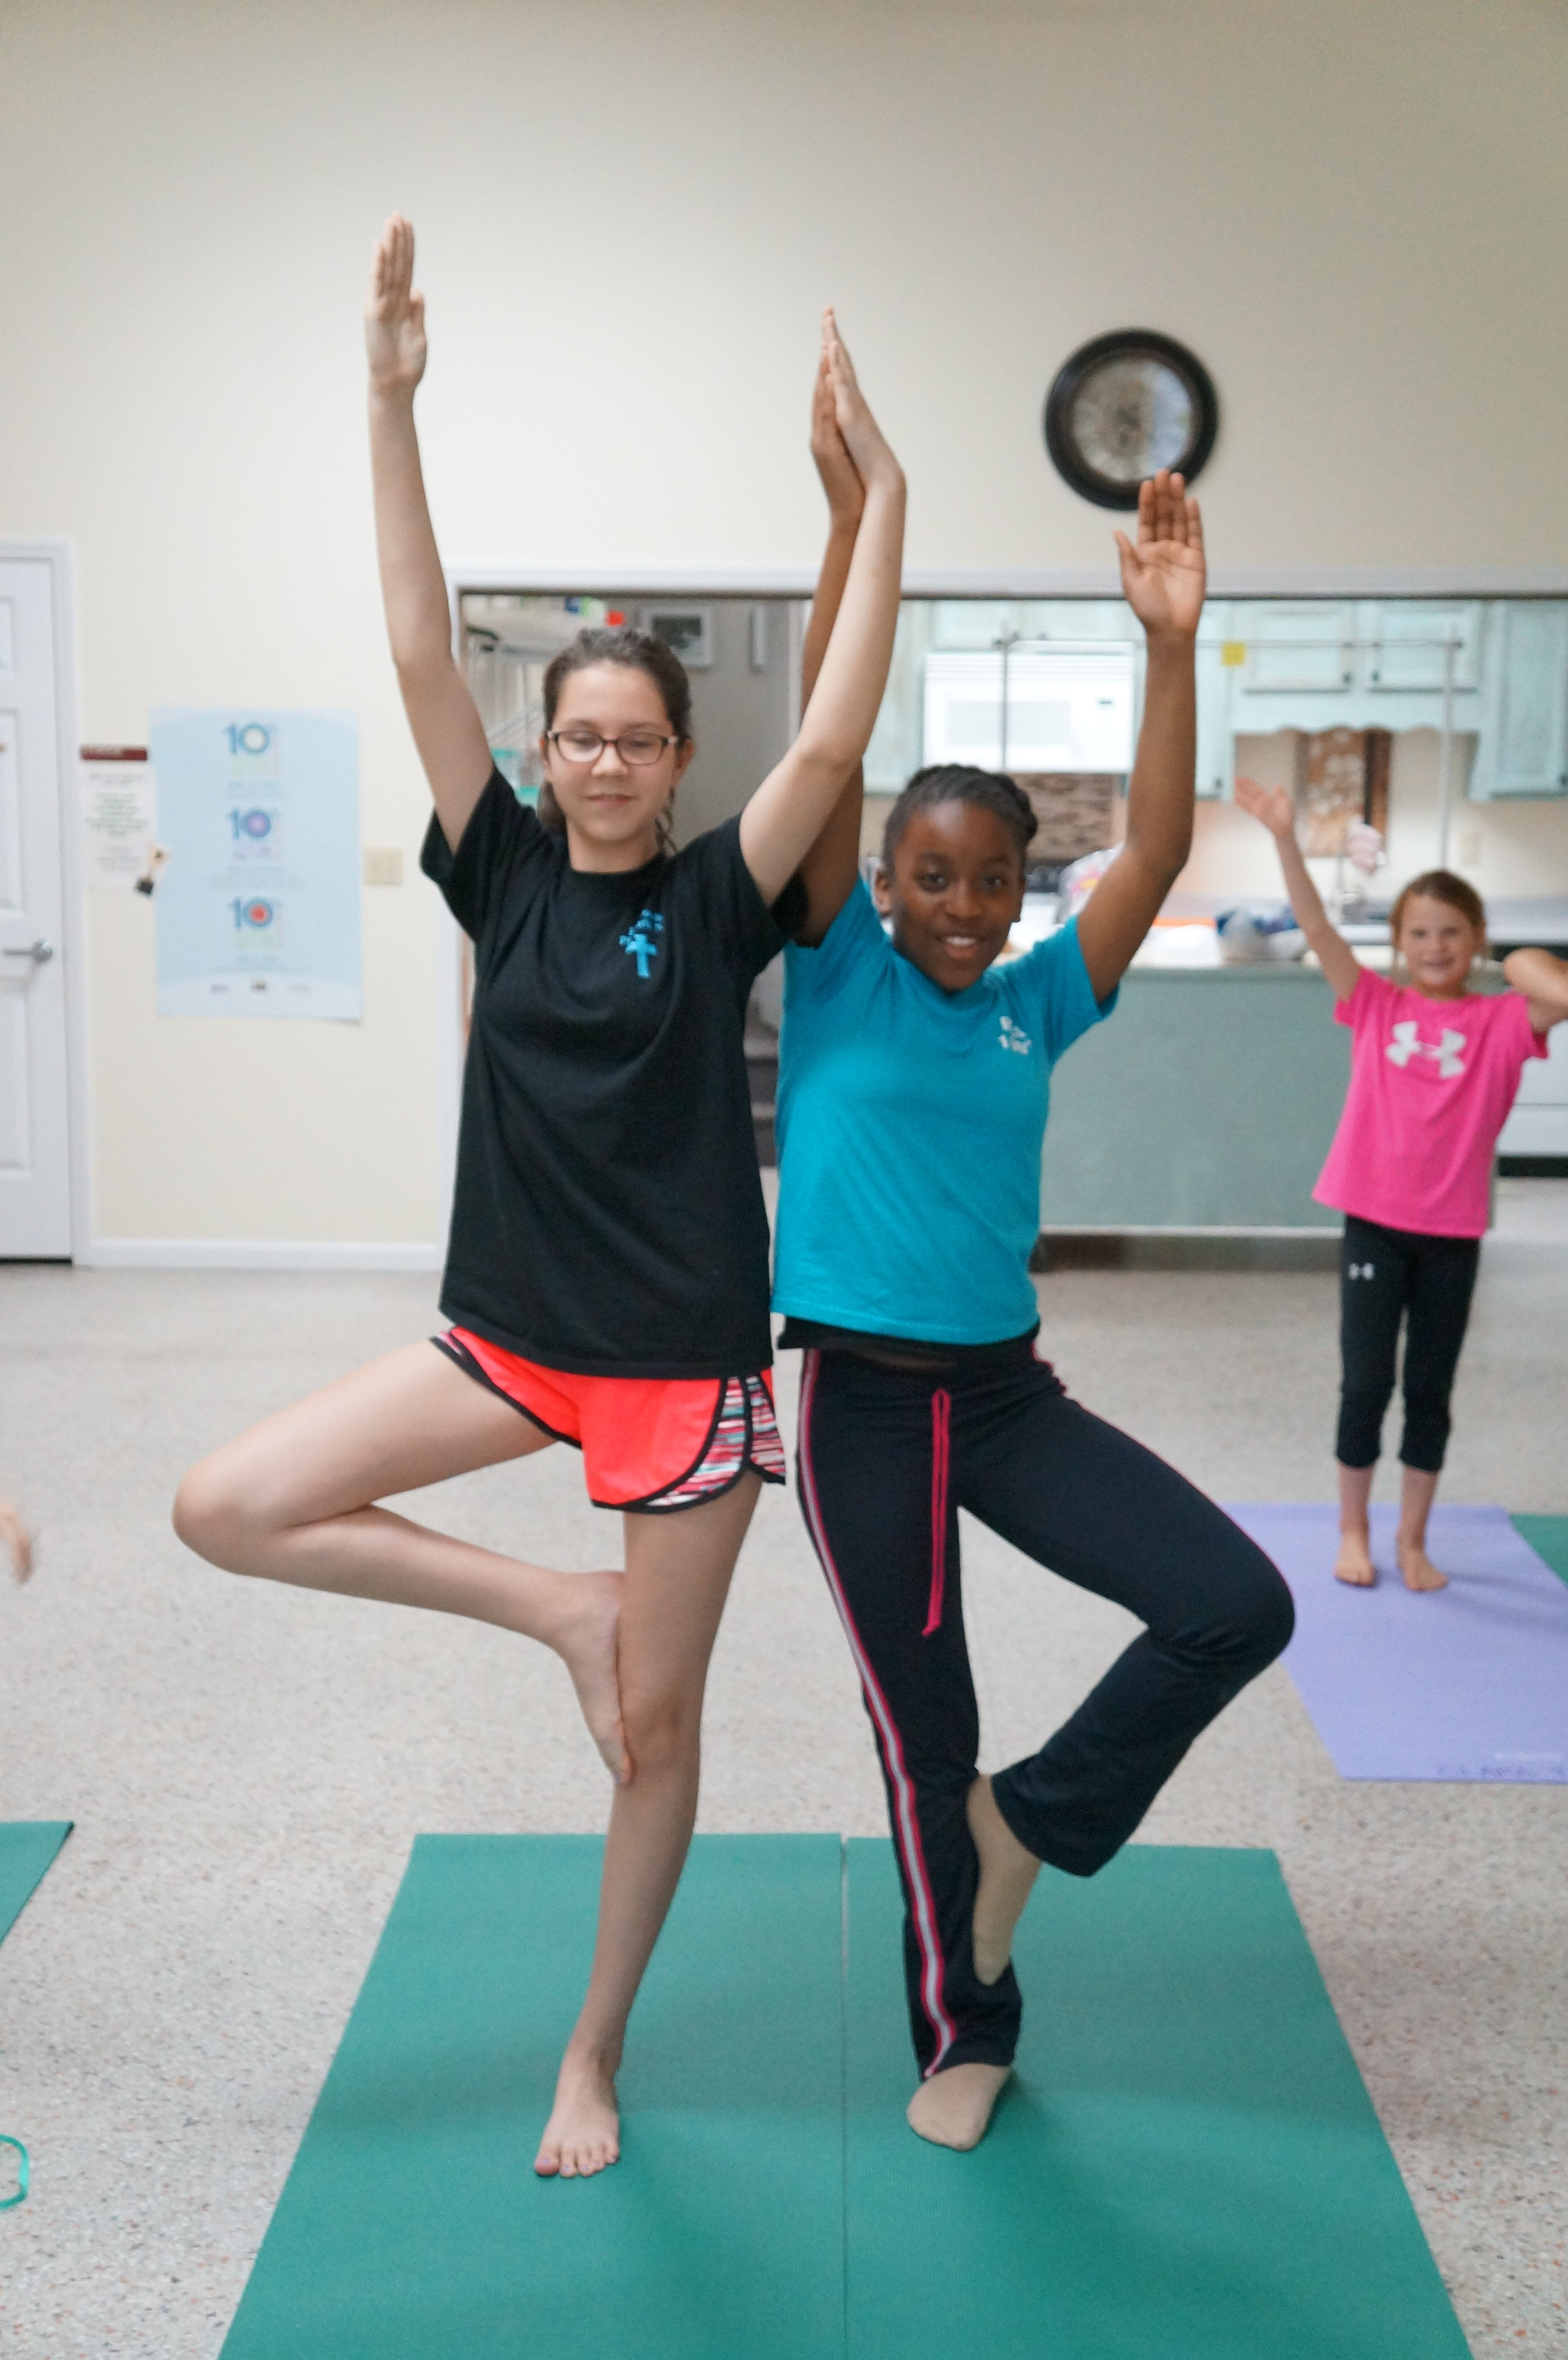 Emily Chandler and Keriah Bell show off a perfect Double Tree Pose during partner yoga class.